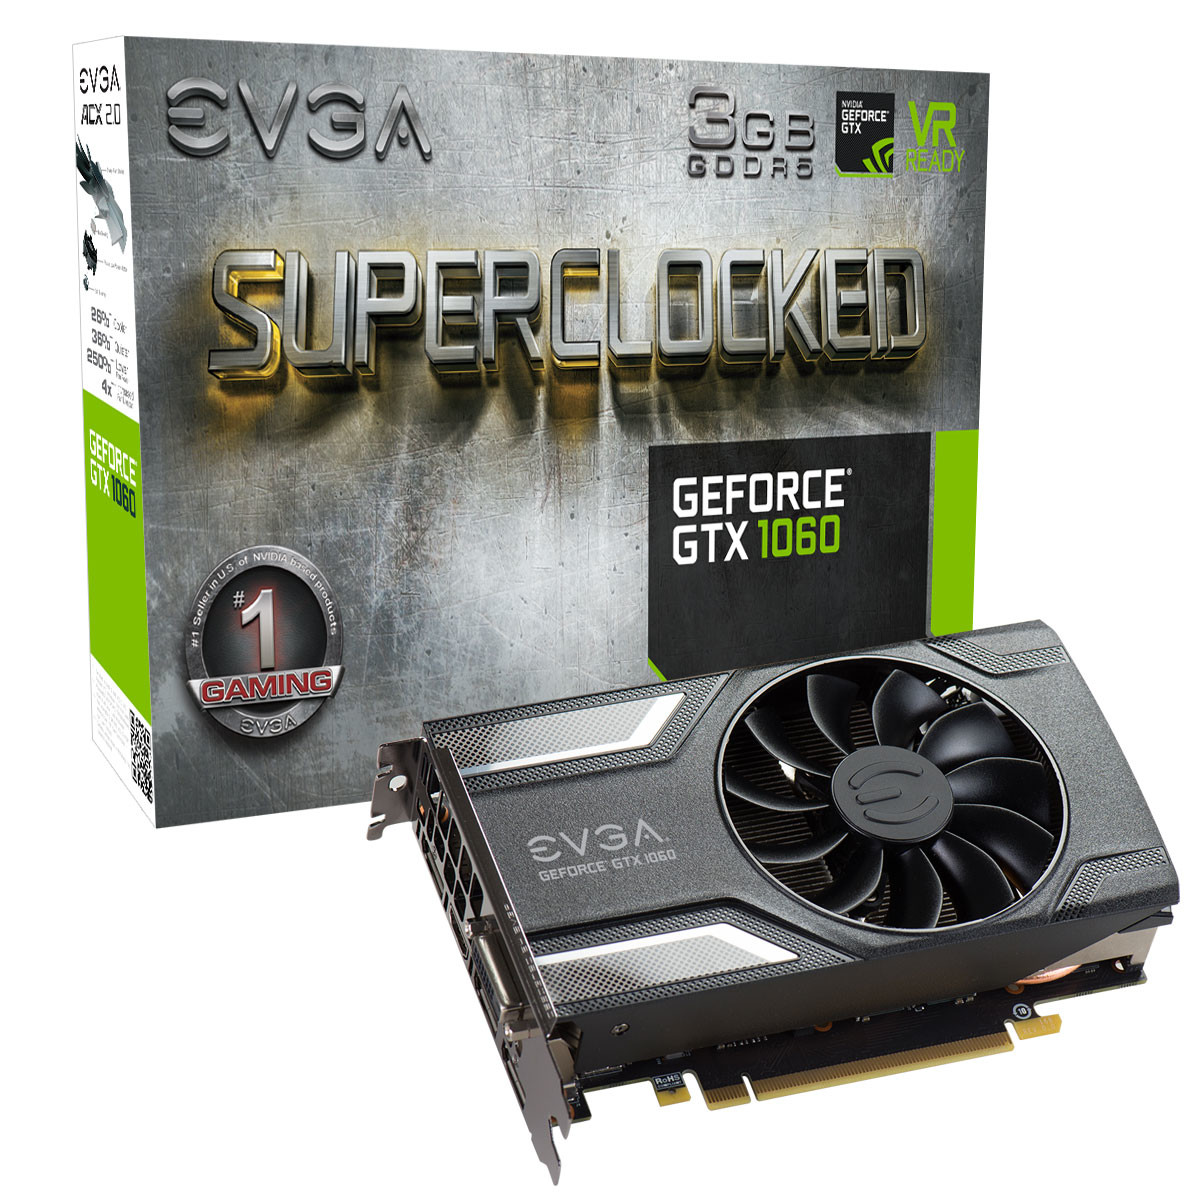 EVGA Announces its GeForce GTX 1060 3GB Graphics Cards | TechPowerUp